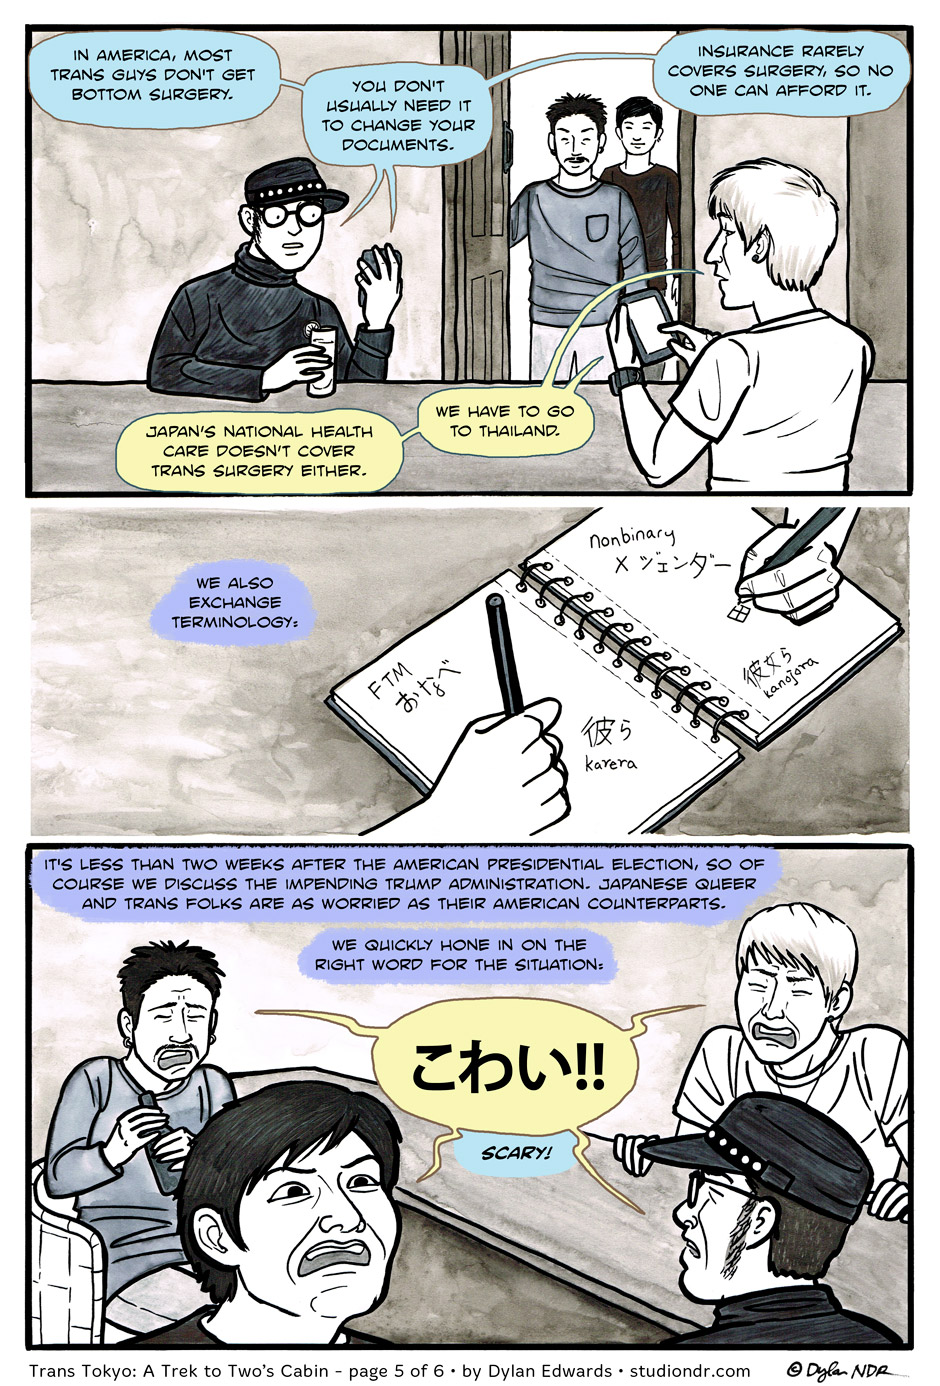 Trans Tokyo: A Trek to Two's Cabin – page 5